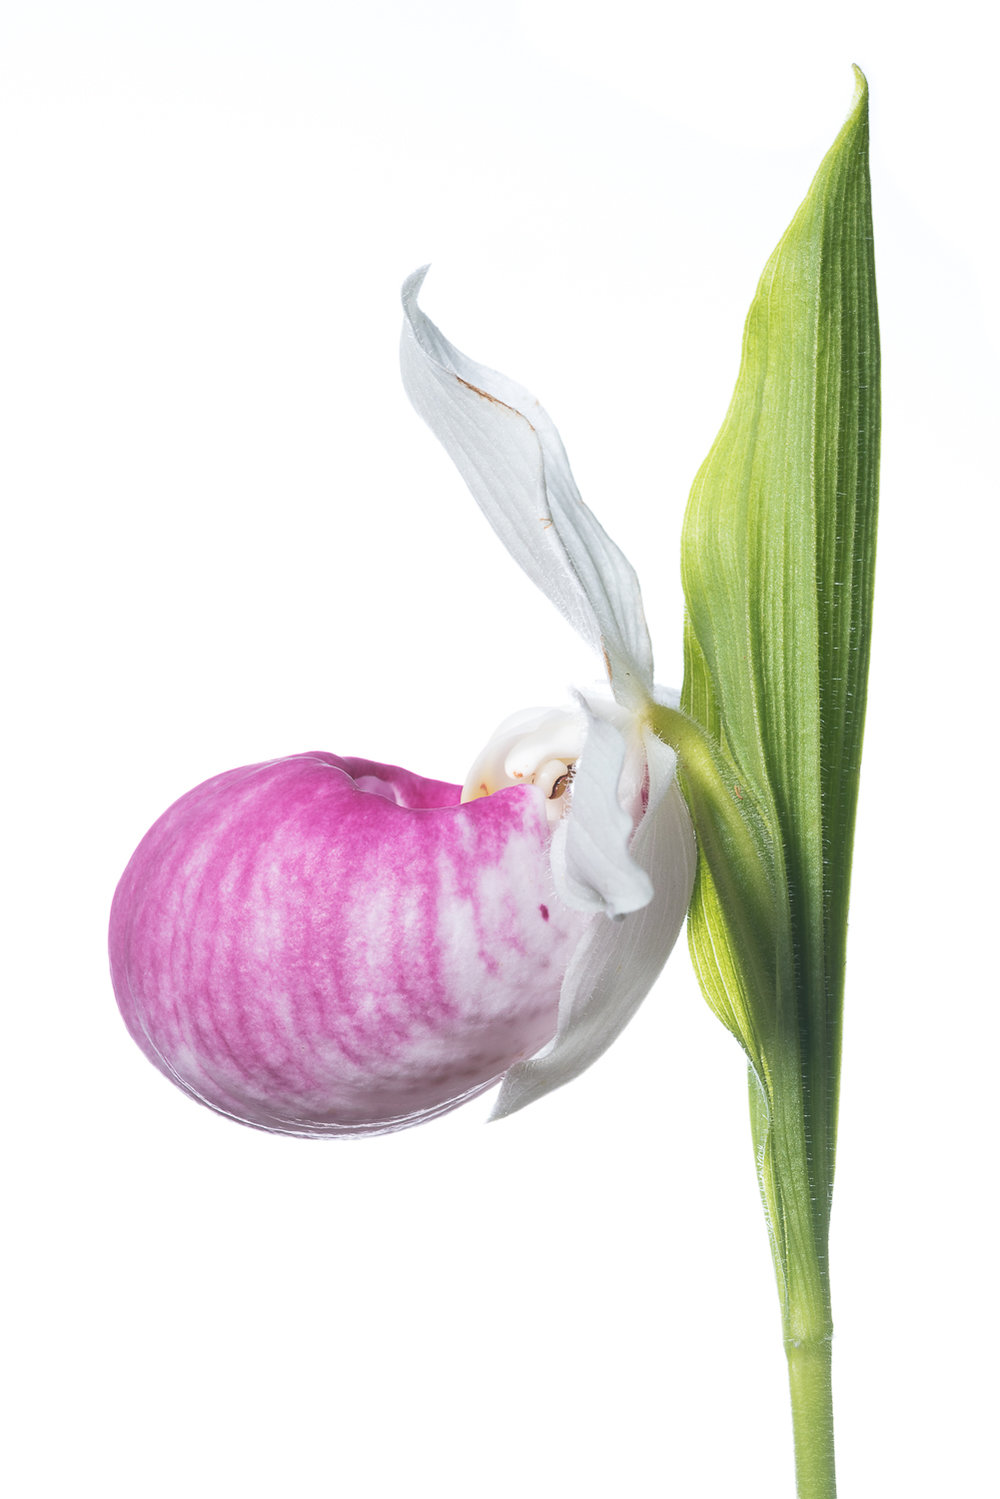 Showy Lady Slipper Profile